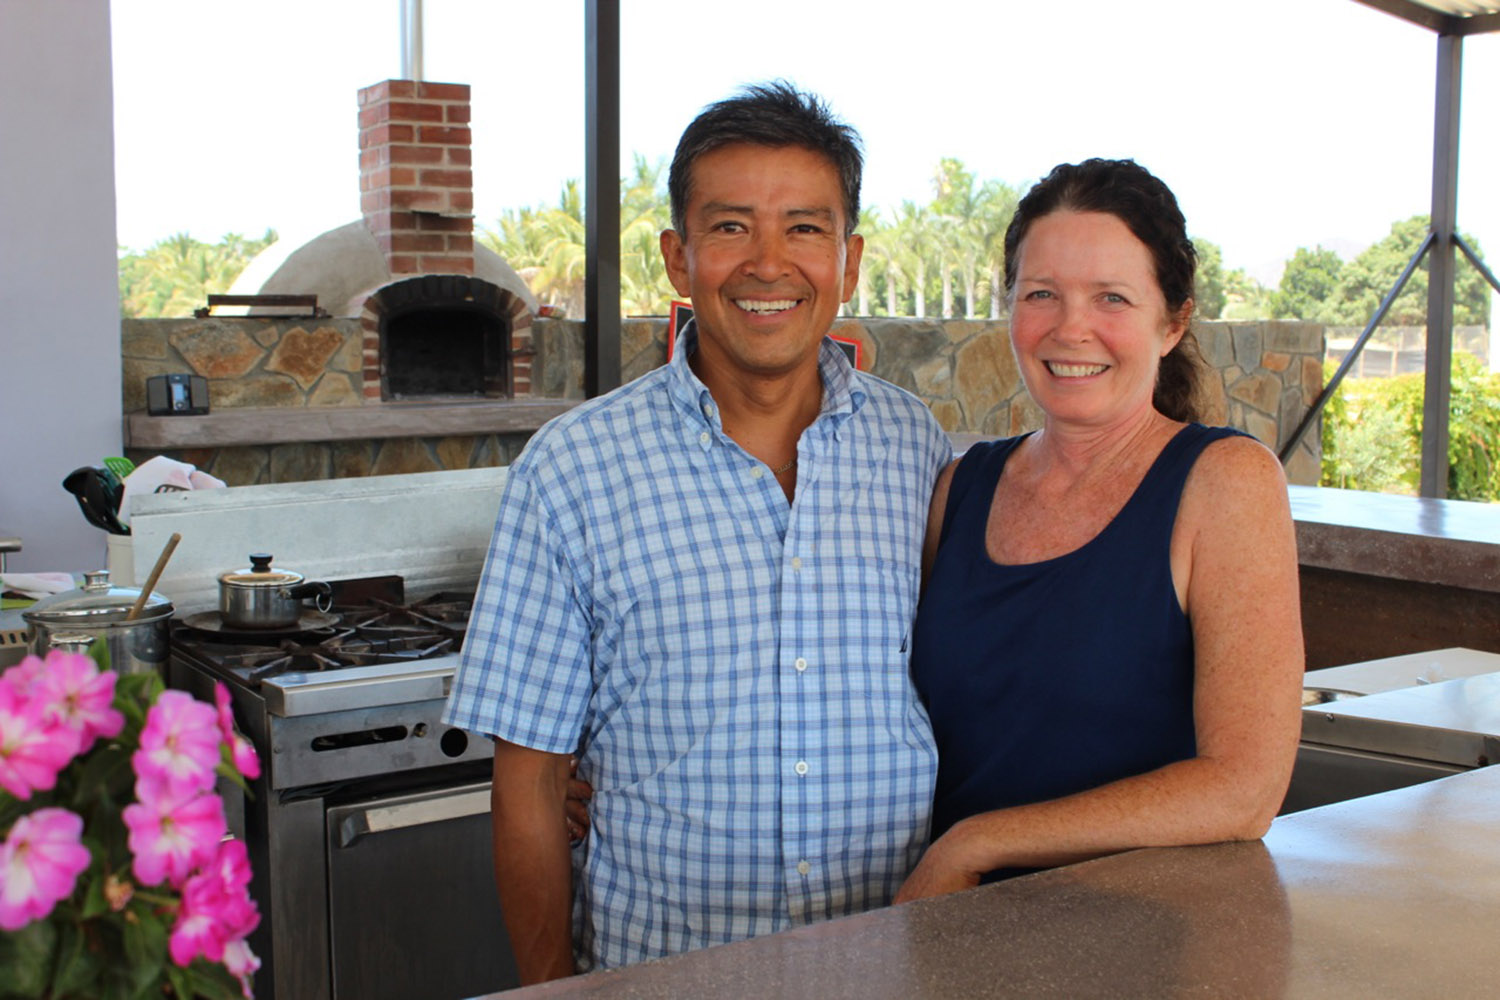 Owners Denise and Marco